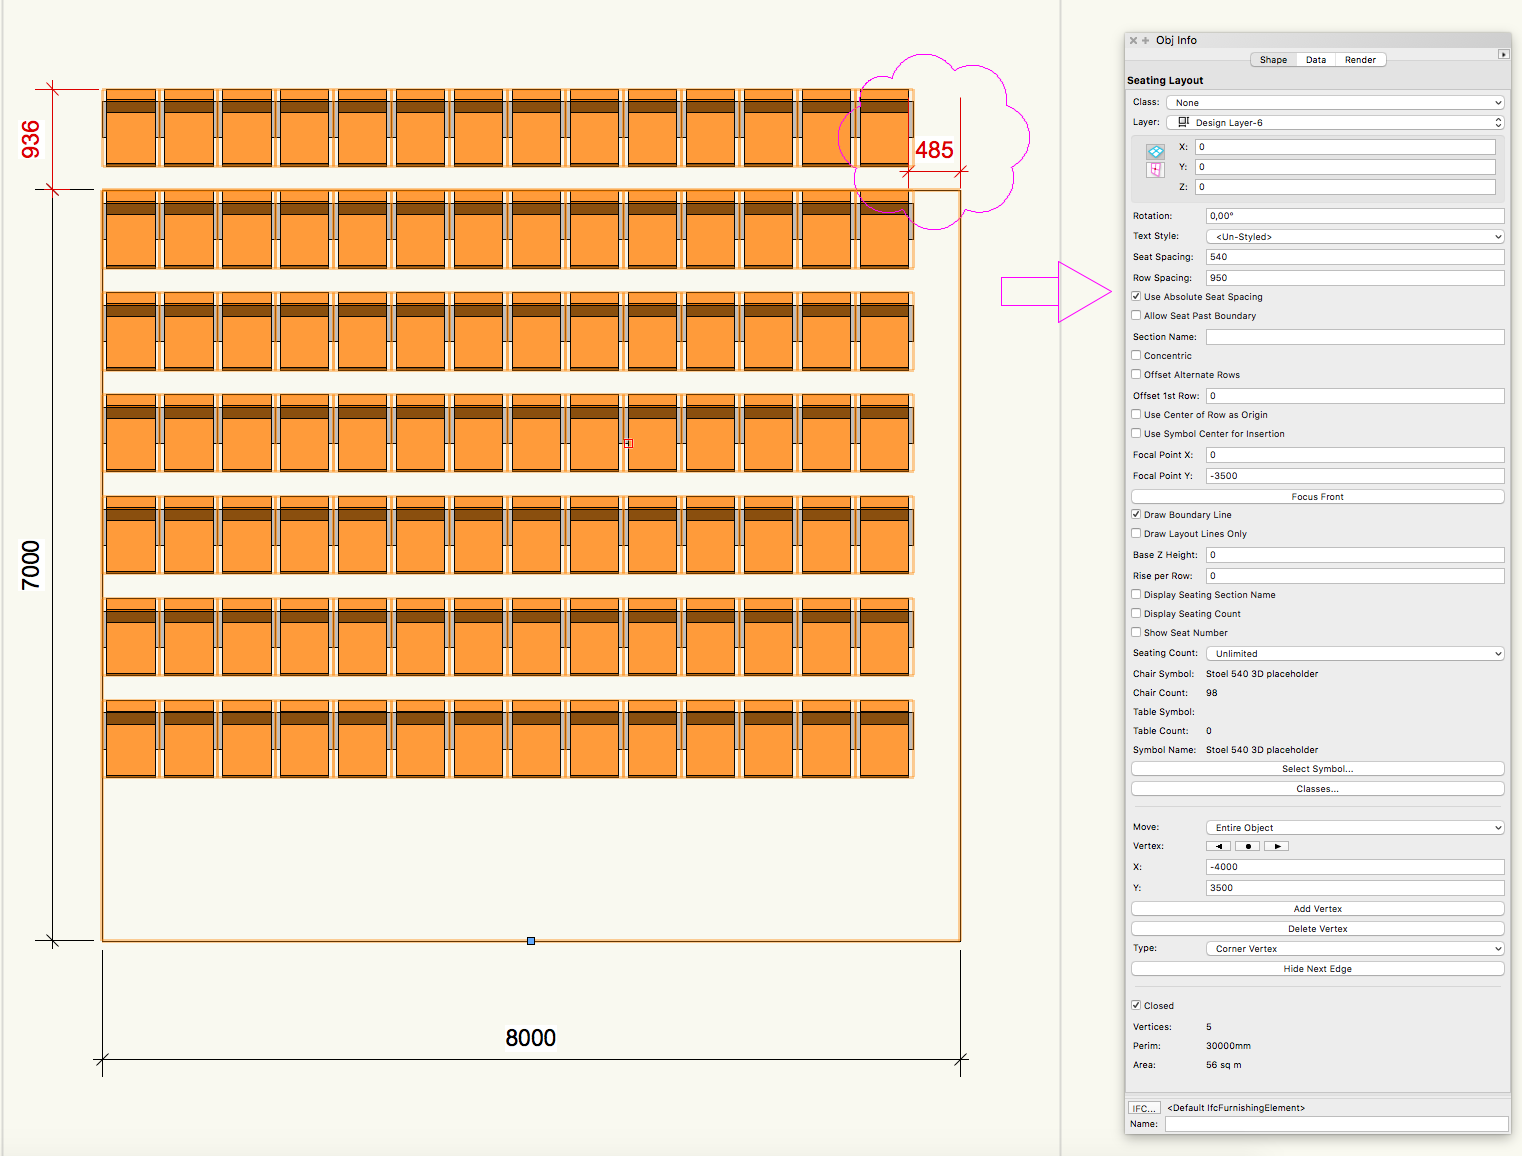 VW 2017 seating layout step 5.png